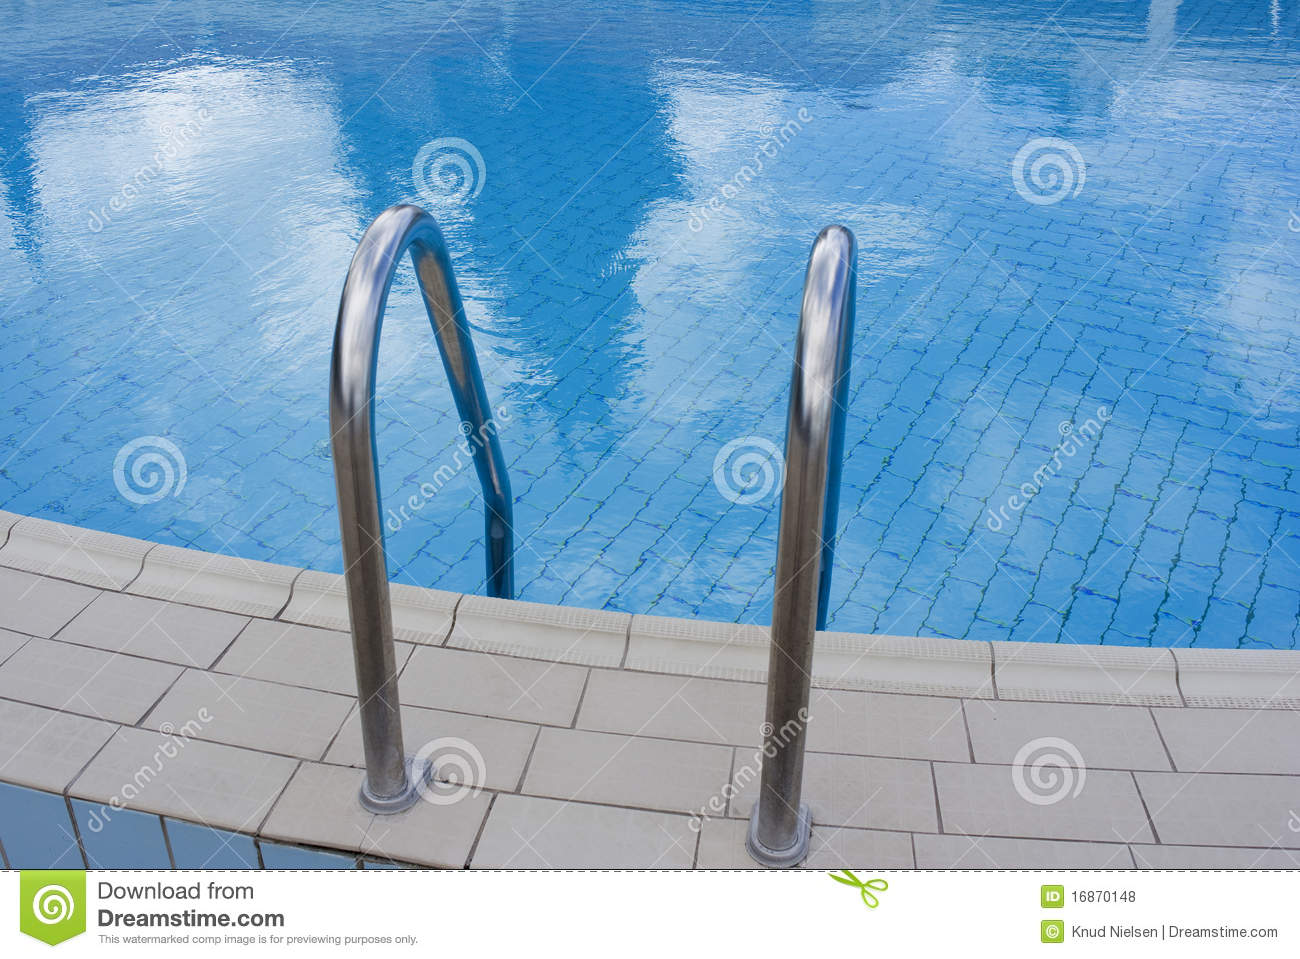 Nettes Schwimmbad